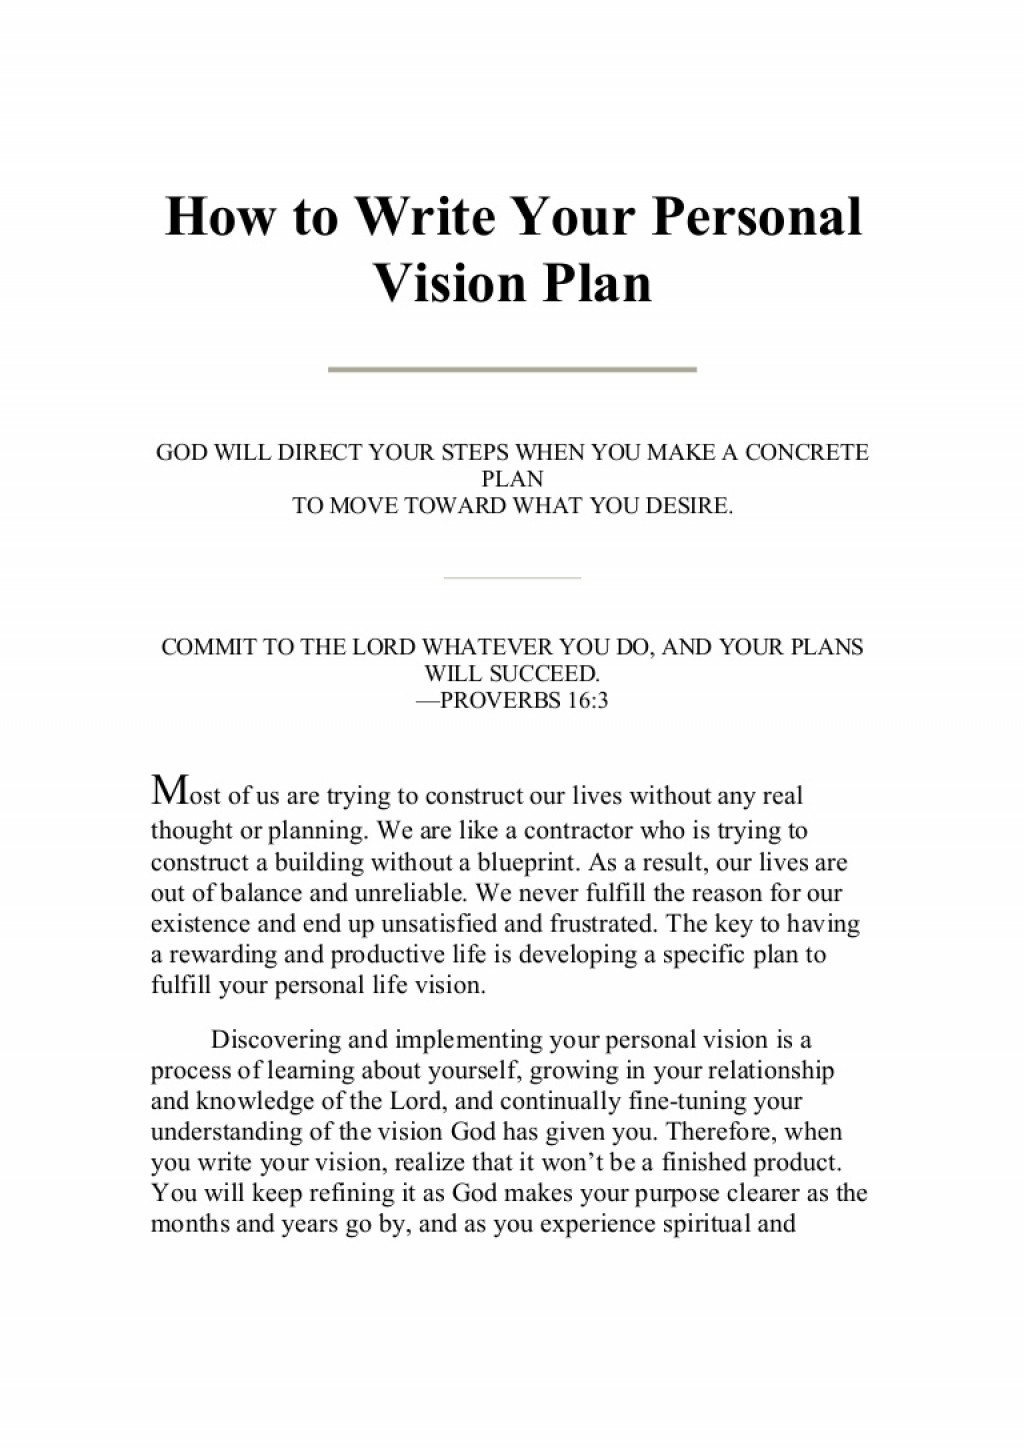 020 Howtowriteyourpersonalvisionplan Phpapp01 Thumbnail 4cb5cu003d1248839068 Essay Example Career Fantastic Goals Business Examples Scholarship Pdf Large